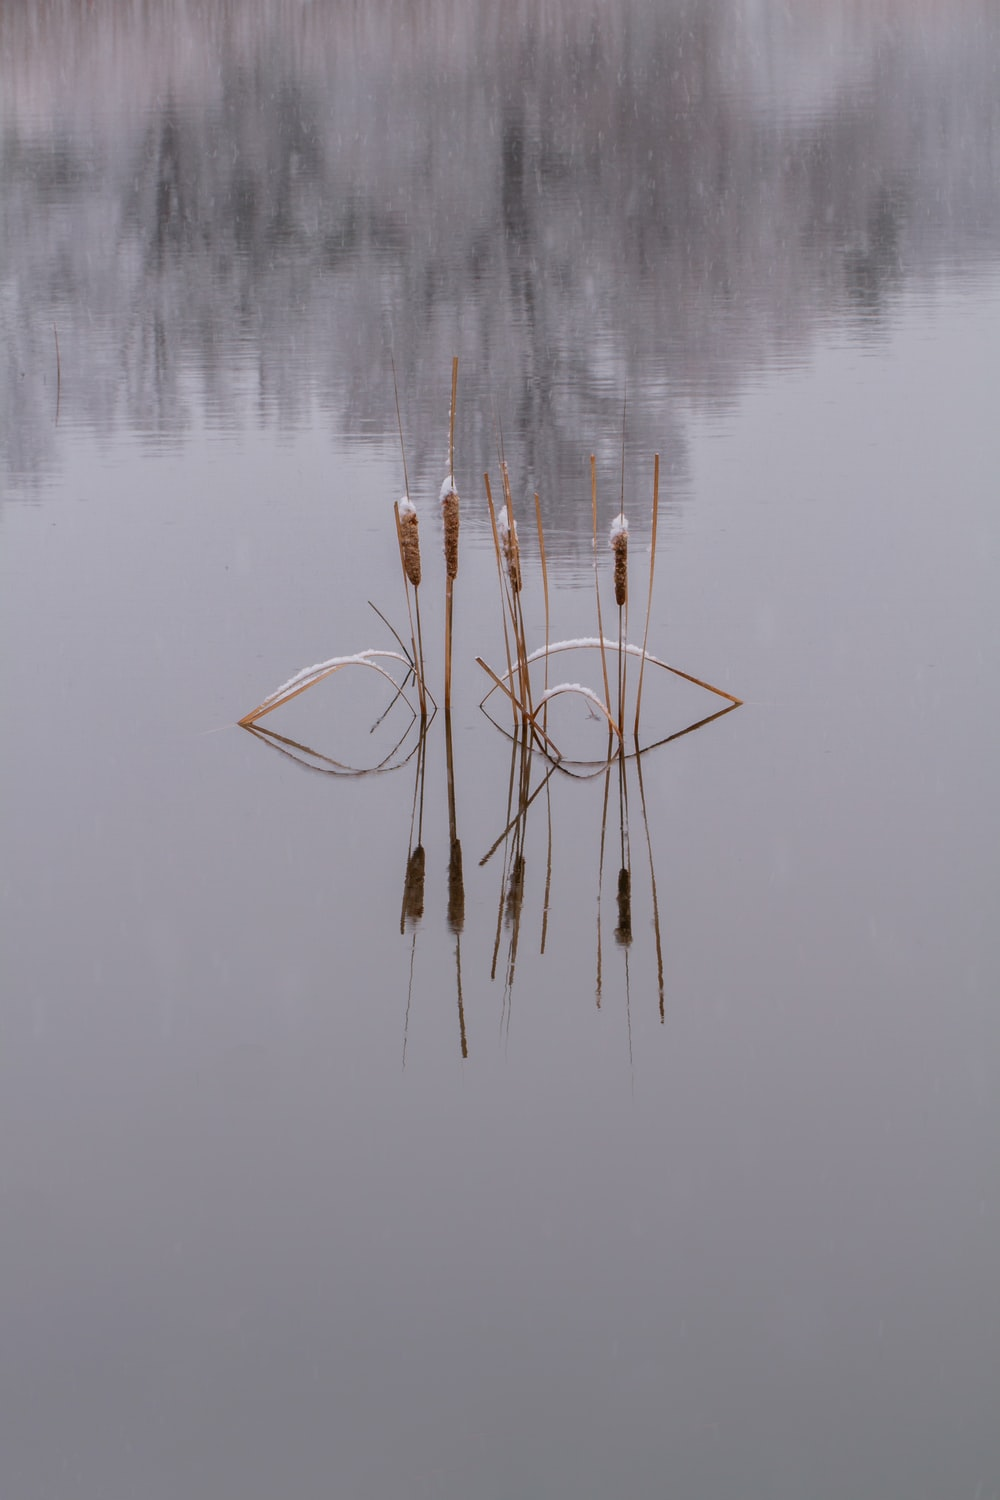 brown stick on body of water